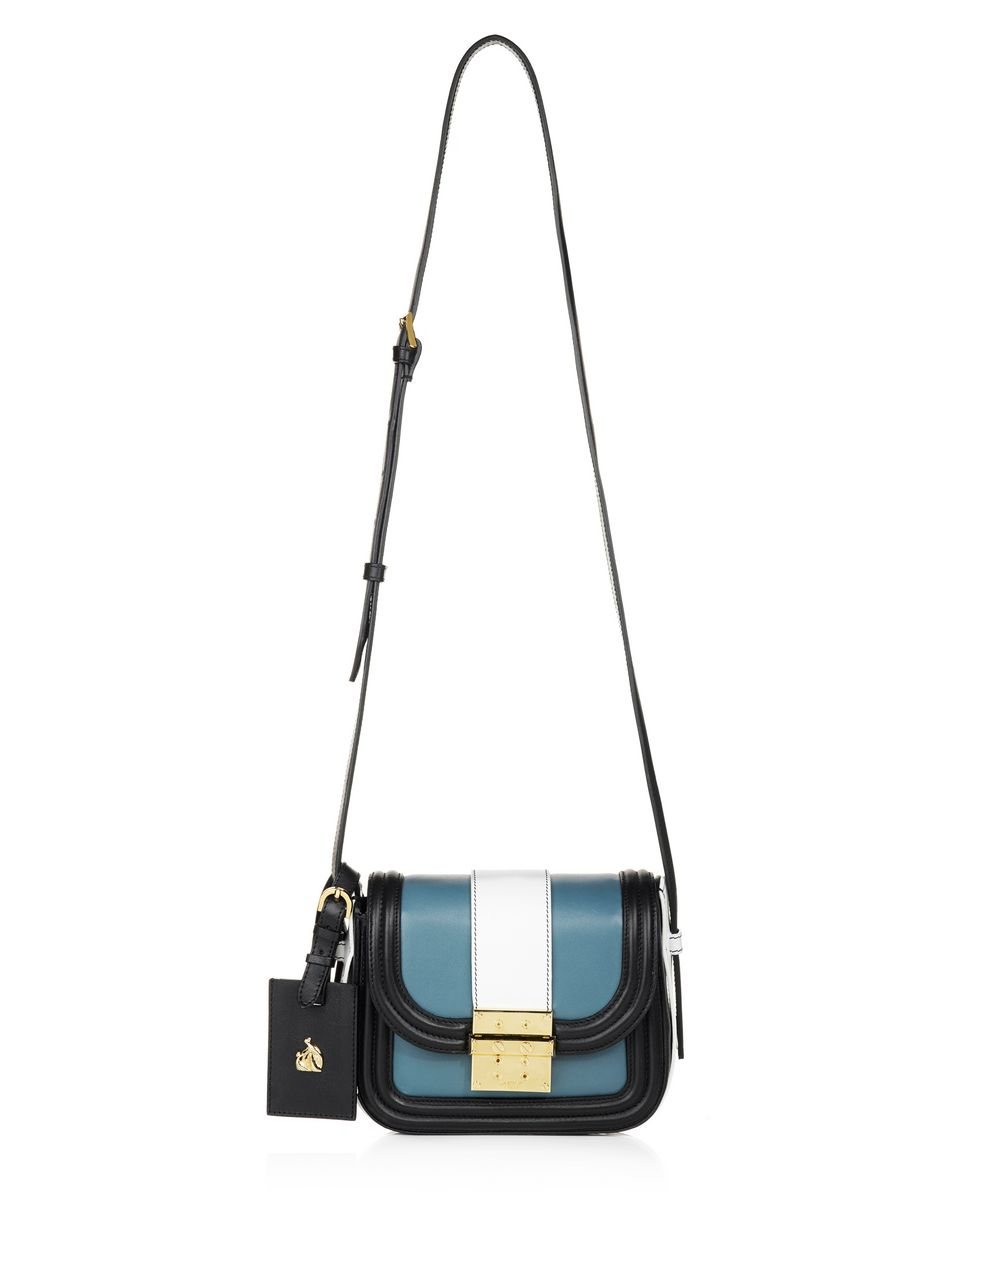 SMALL MID-BLUE LALA BAG BY LANVIN  - Lanvin